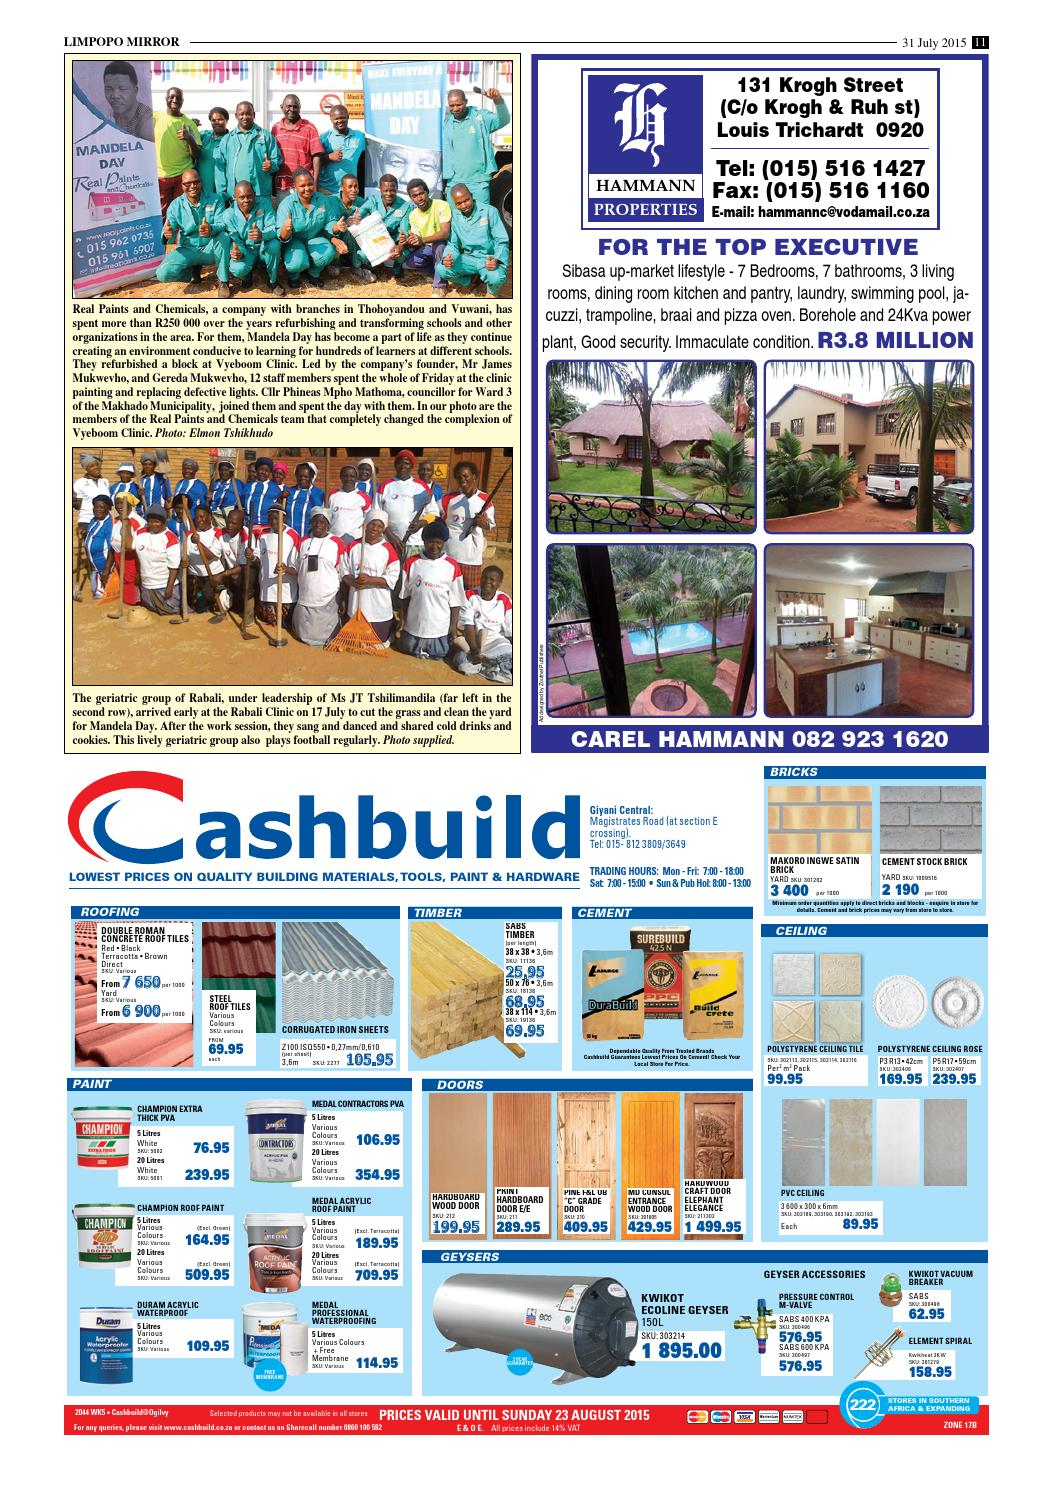 31 July 2015 Limpopo Mirror By Zoutnet Issuu